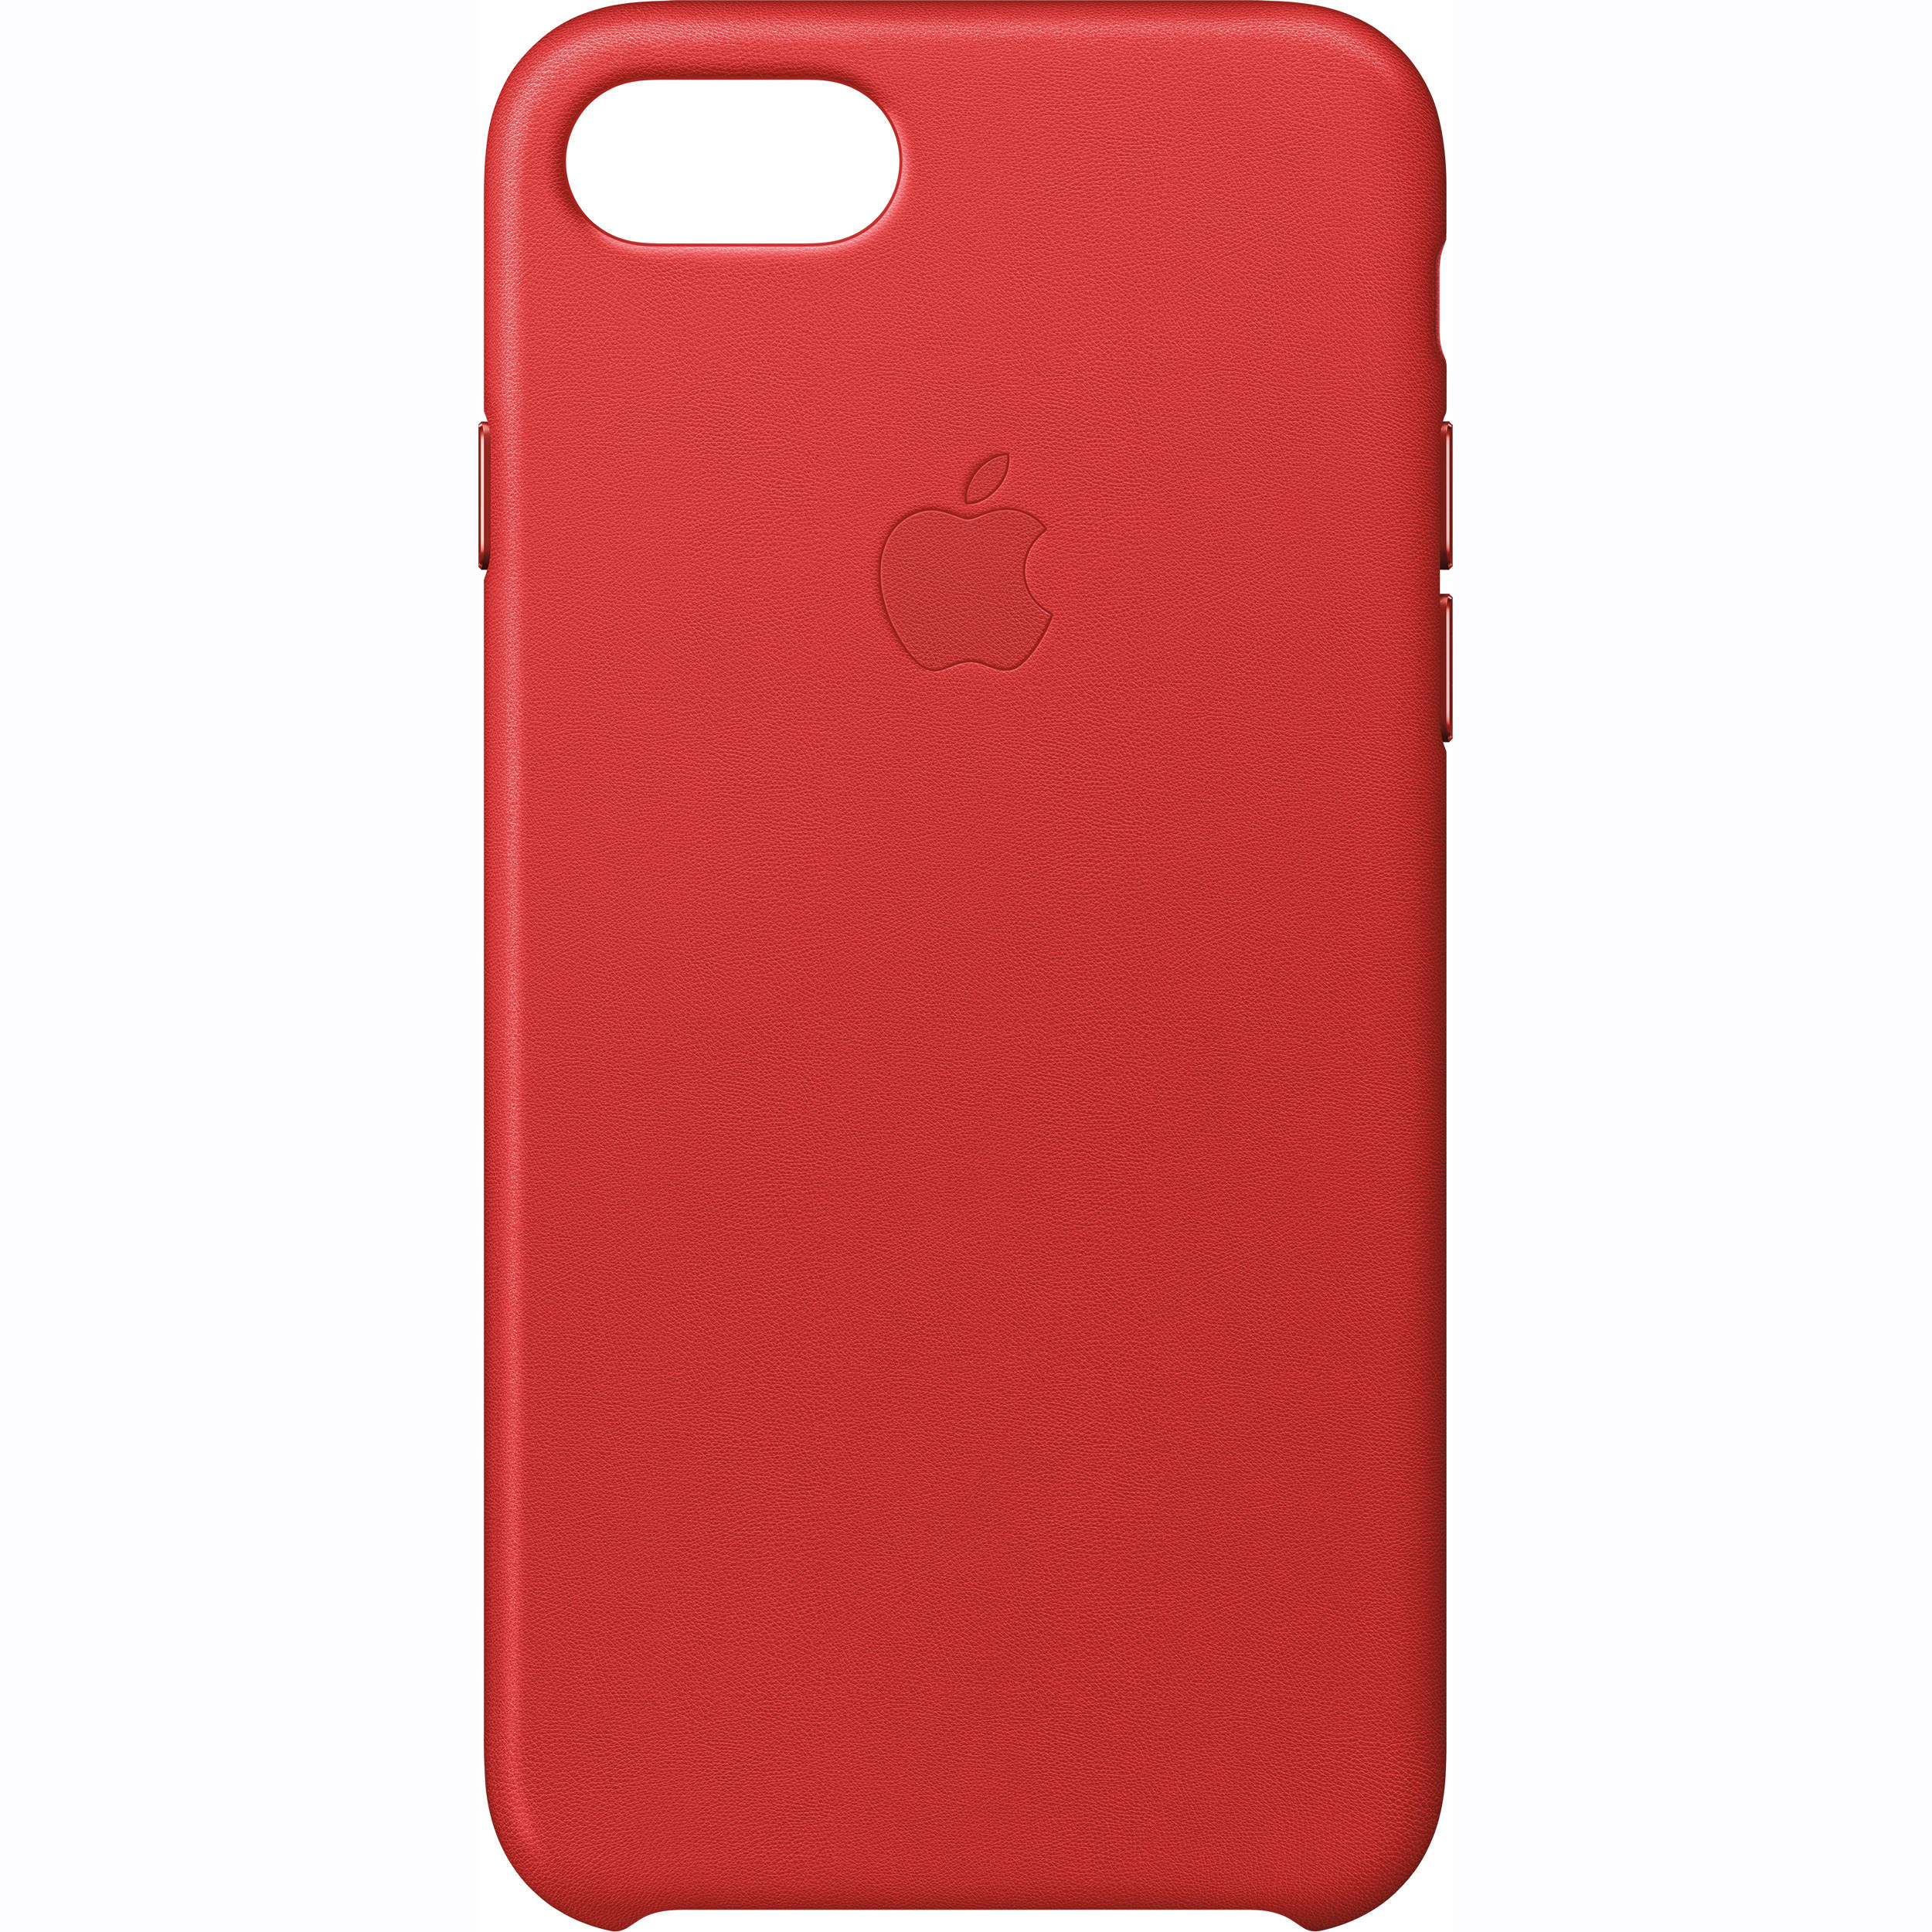 iphone leather case. apple iphone 7 leather case ((product)red) iphone